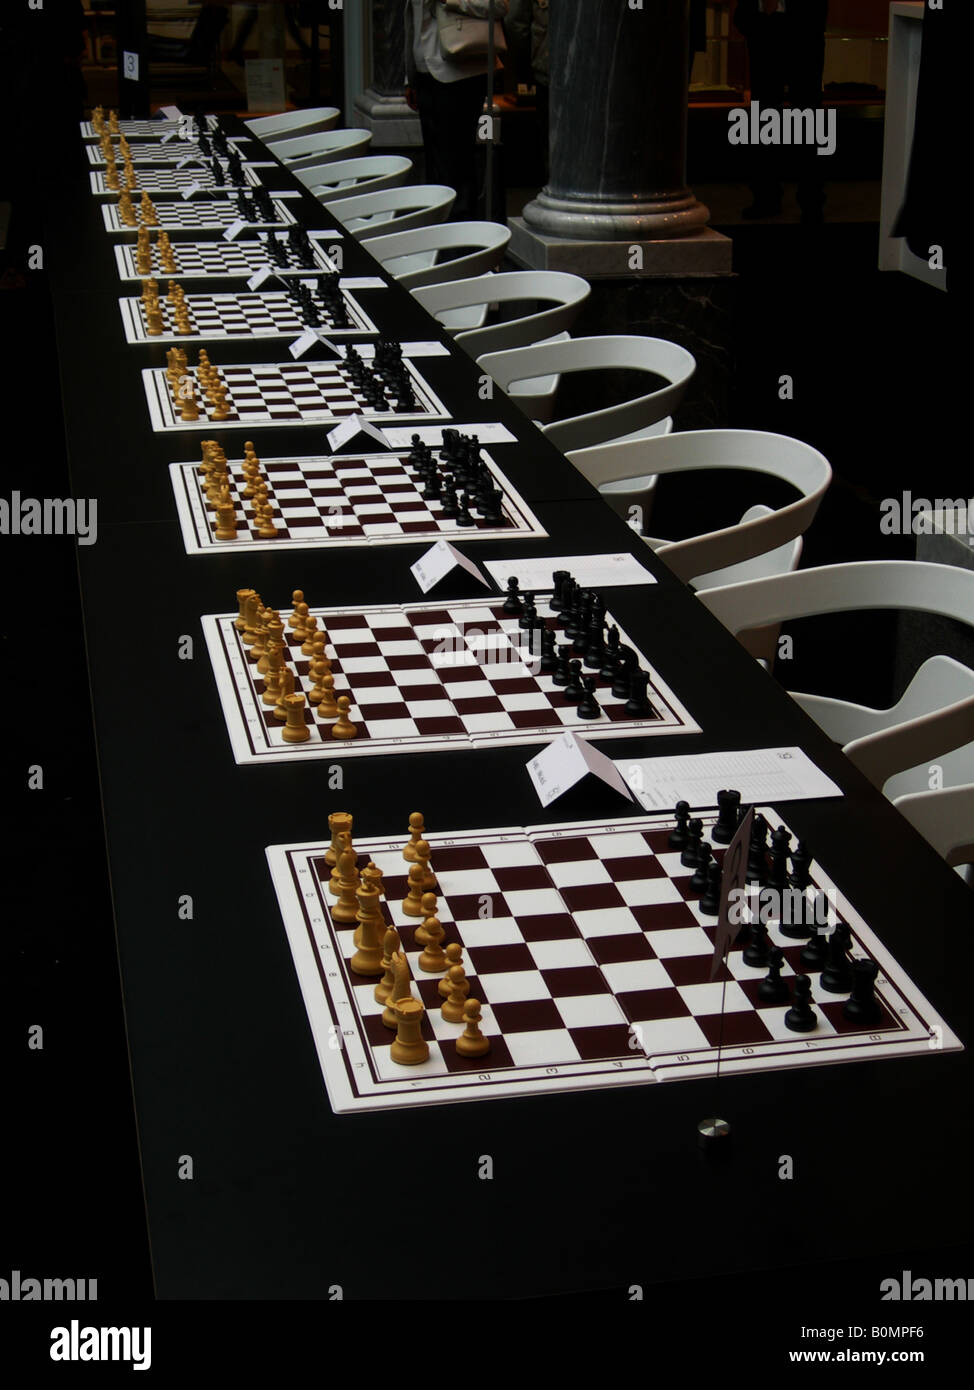 many chess boards for simultaneous games - Stock Image